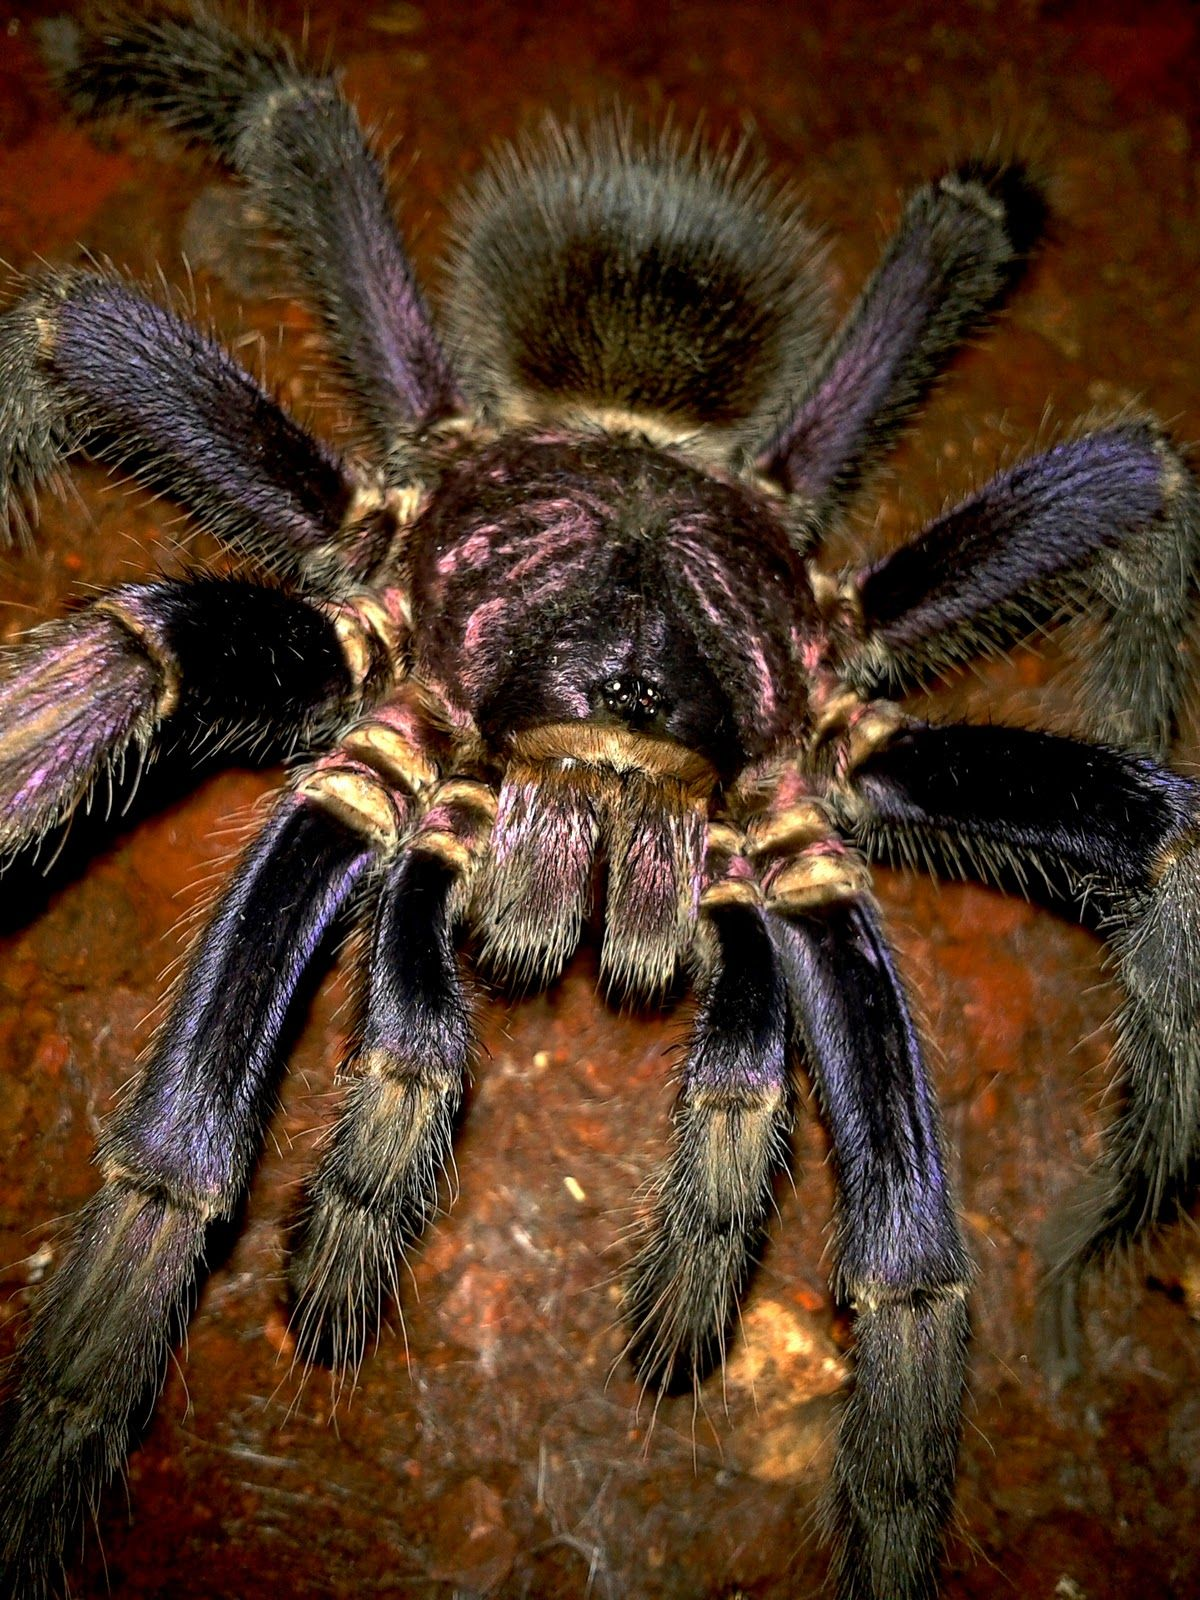 Phormictopus cancerides. Common name Haitian Brown